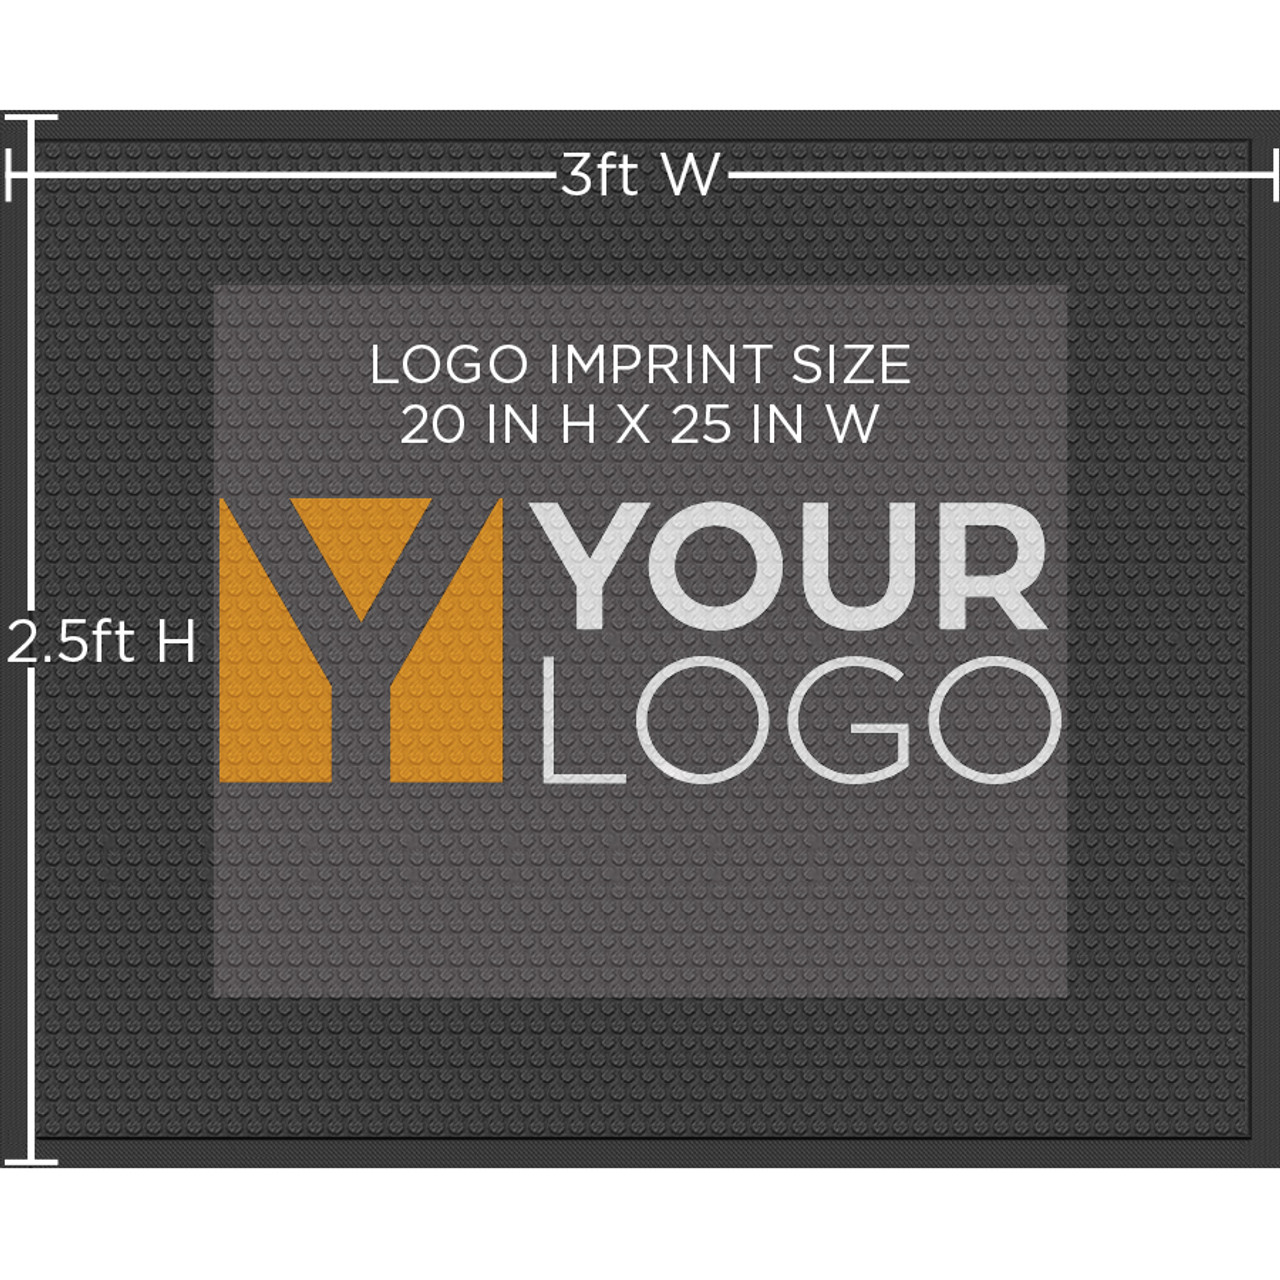 Rubber Scraper 2.5ft X 3ft Logo Mat | Indoor/Outdoor